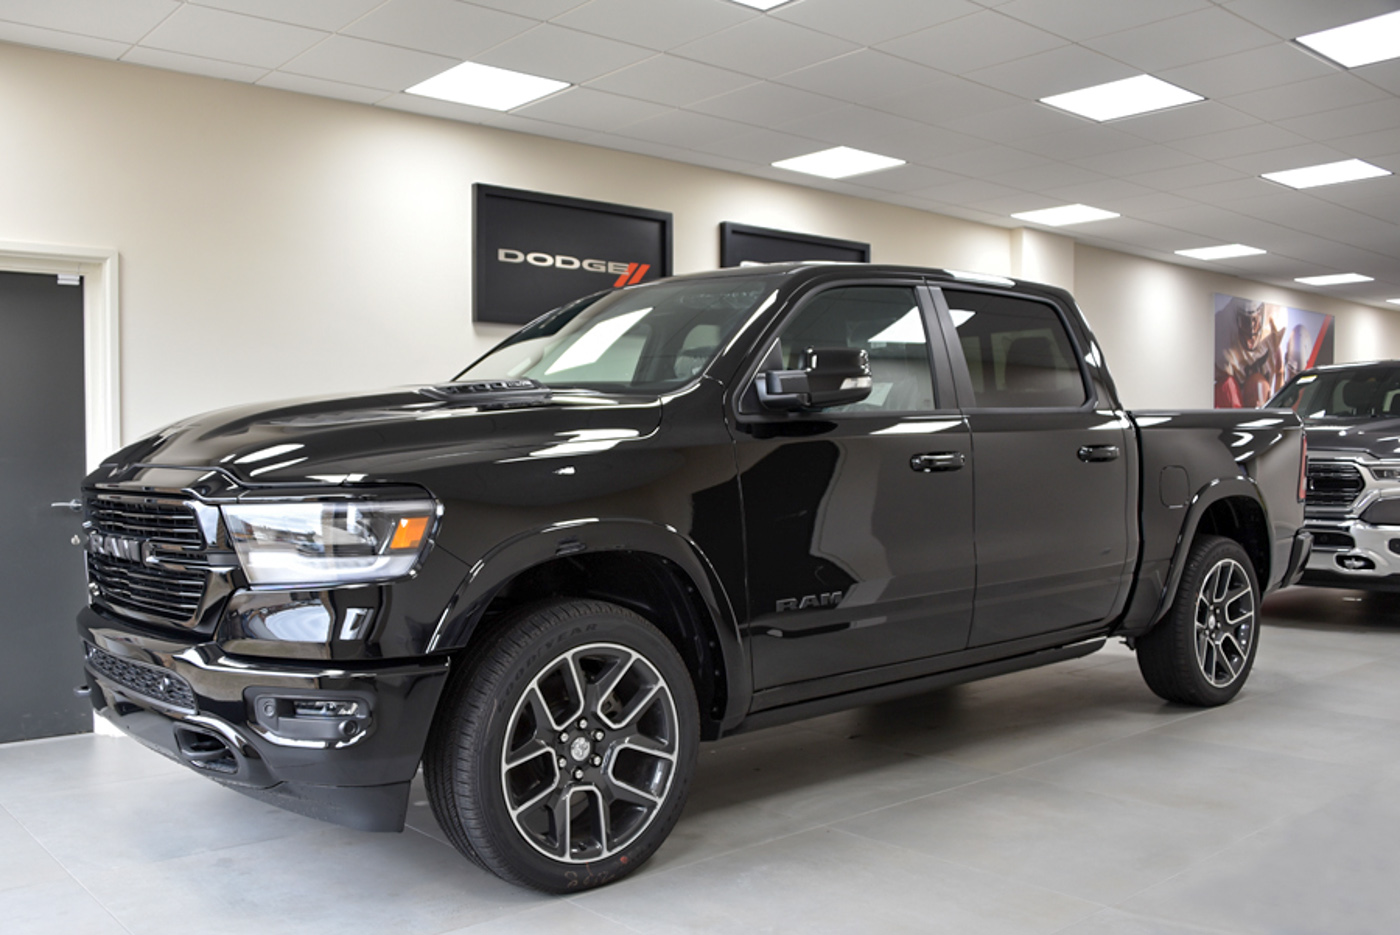 New American Vehicles To Order David Boatwright Partnership Official Dodge Ram Dealers